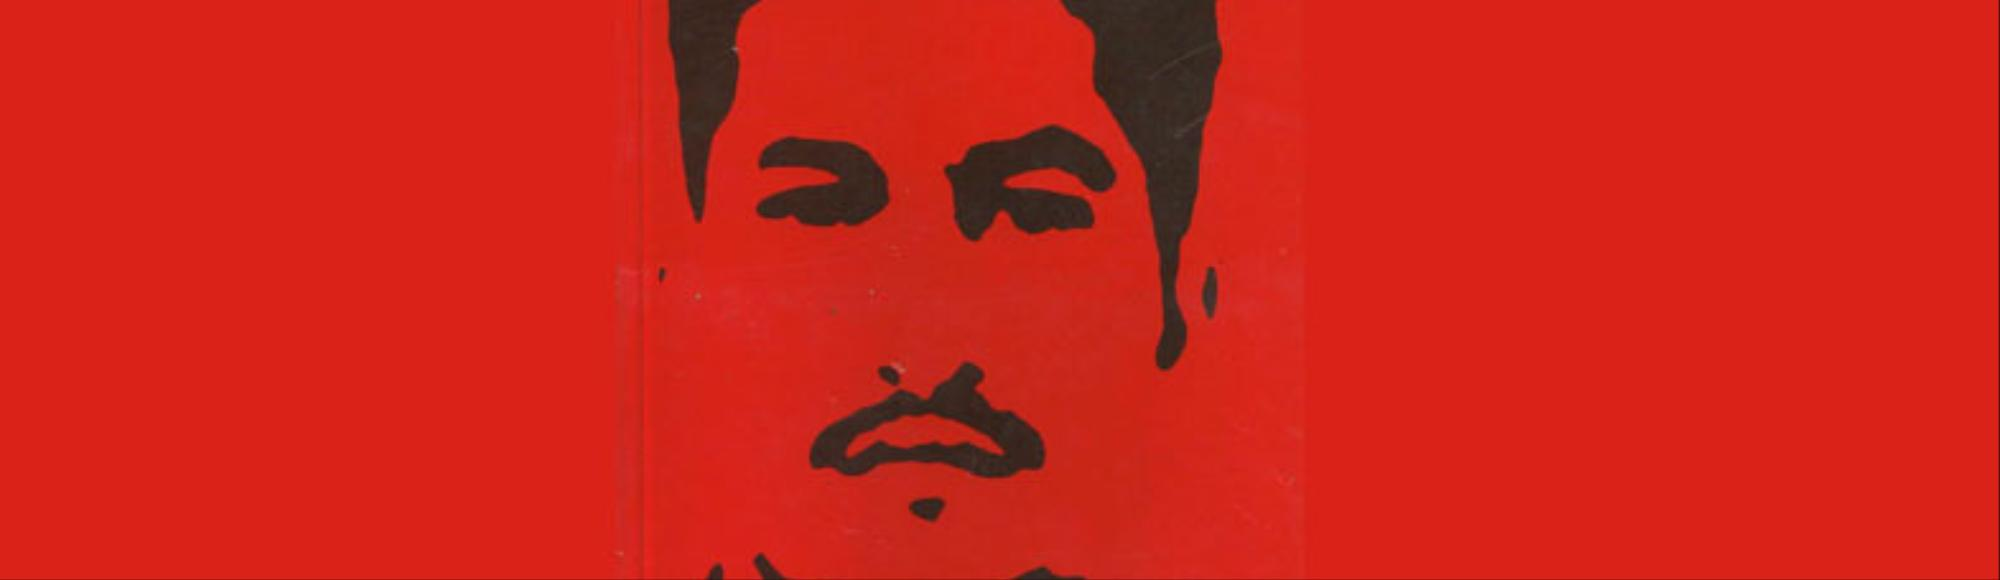 Drug Lord Nazario Moreno, the Philosopher Capo Who Wrote Books